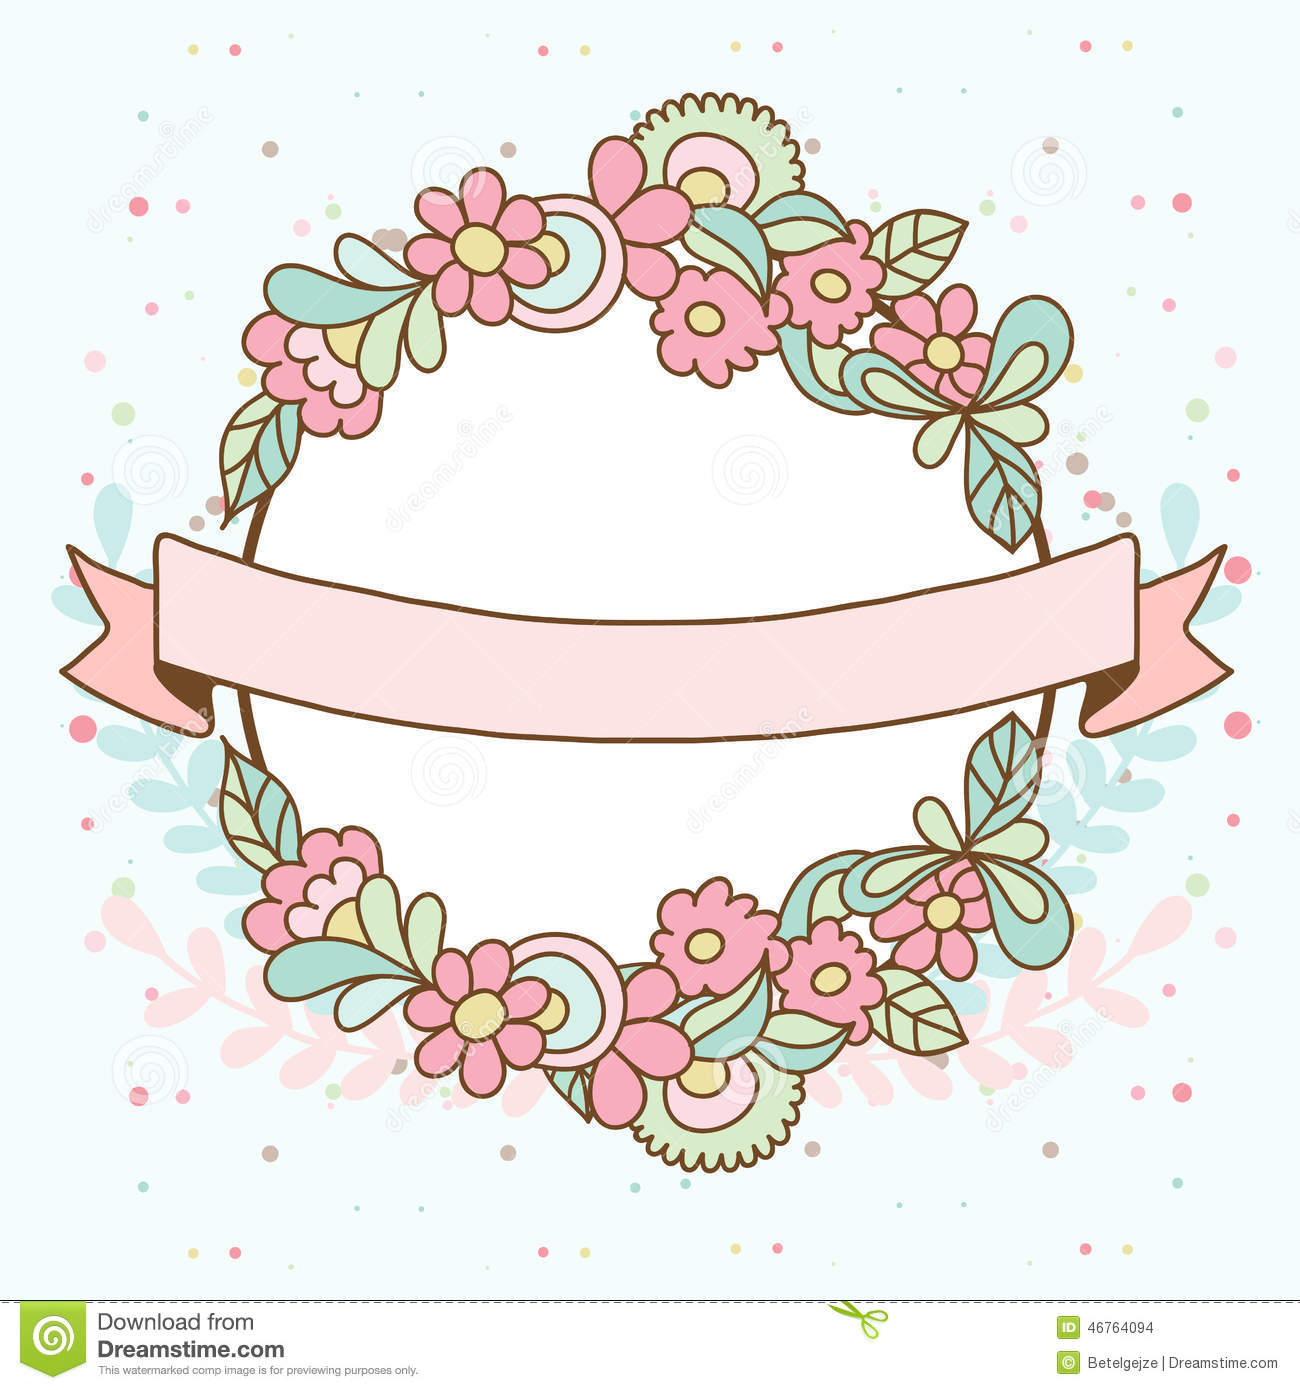 Camellia Illustration Decorative Floral Fram...